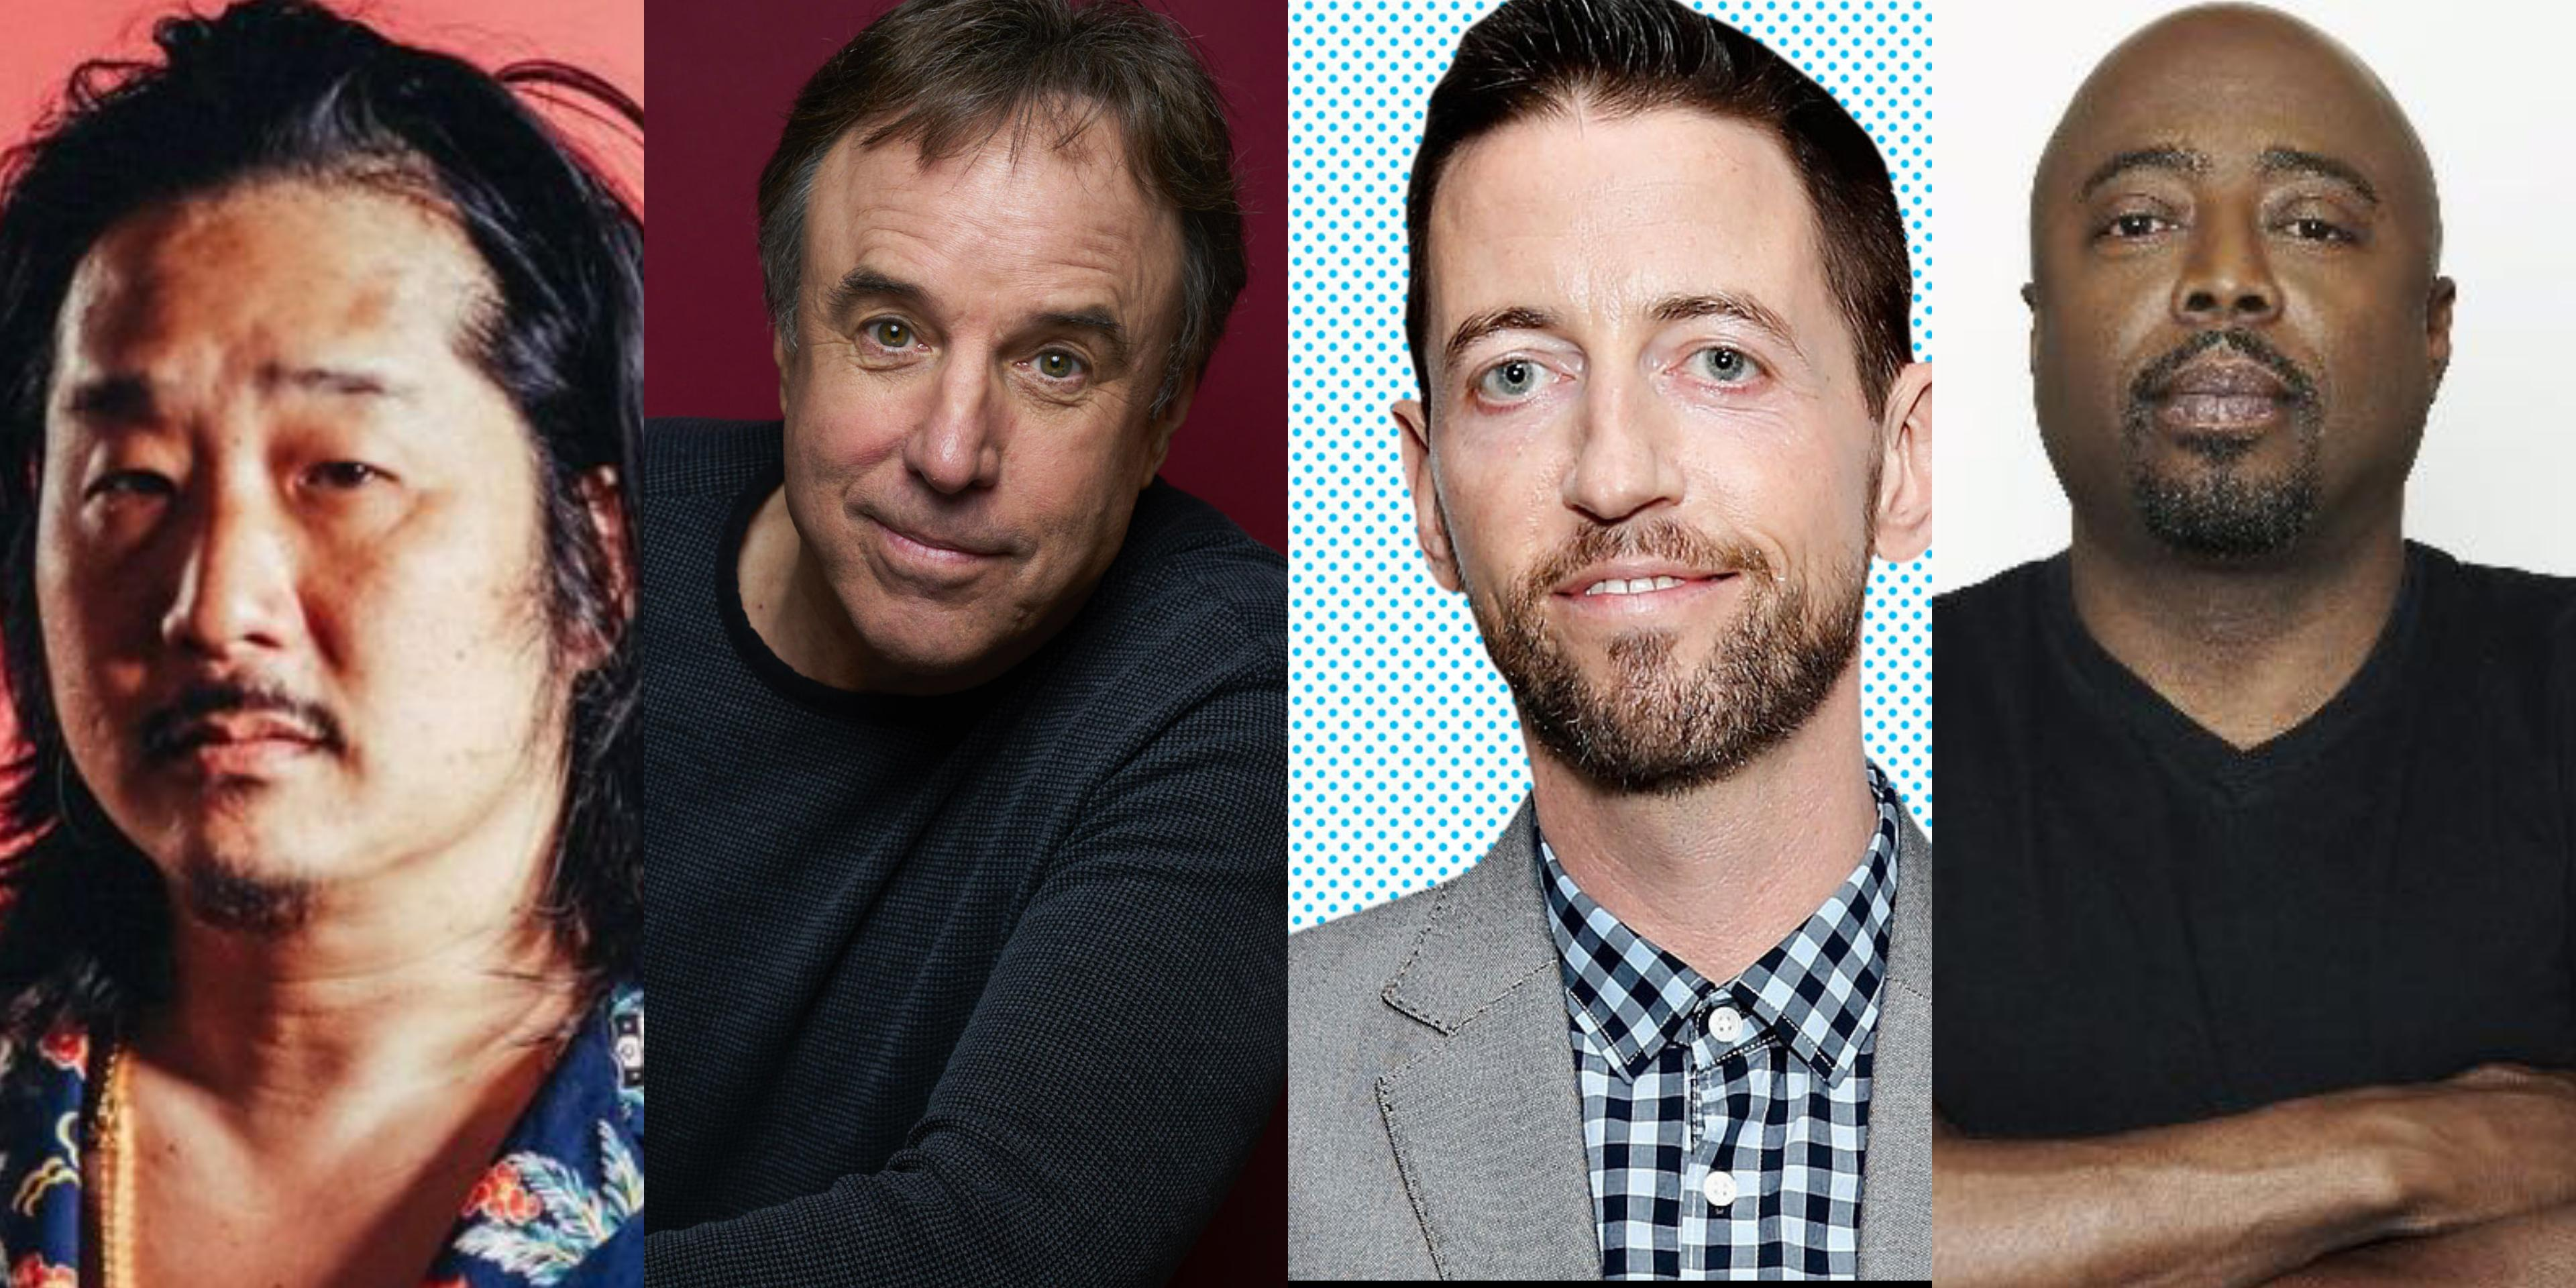 Bobby Lee, Kevin Nealon, Neal Brennan, Donnell Rawlings